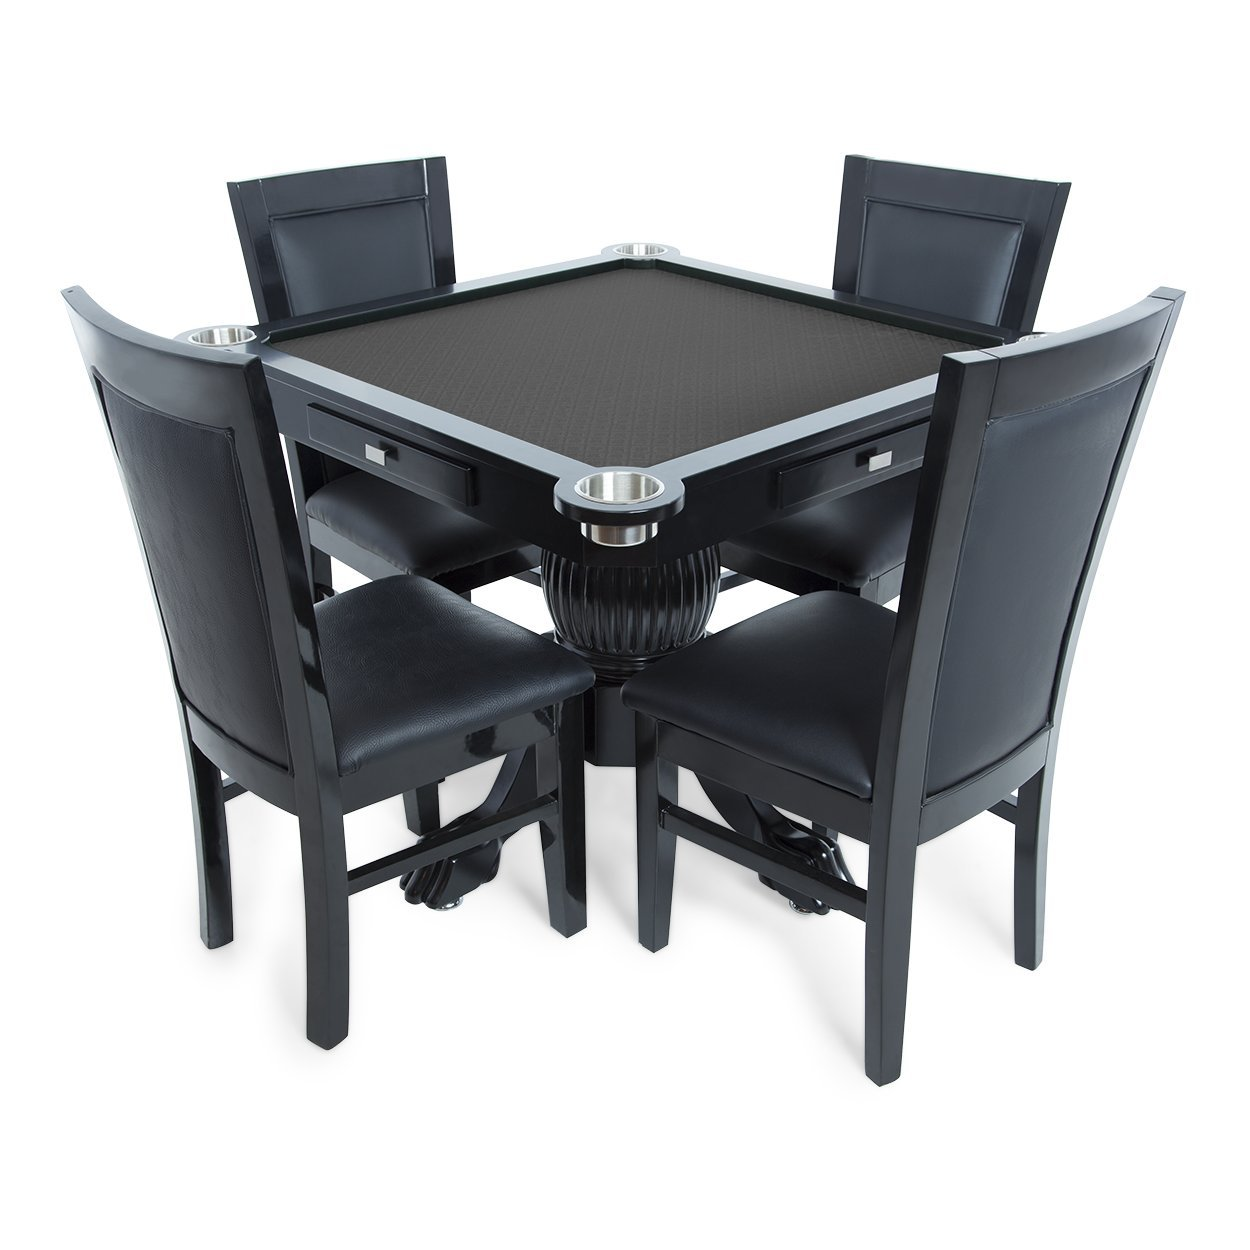 BBO Poker Levity Game and Poker Table for 4 Players with Black Speed Cloth Playing Surface, 40.5-Inch Square, Includes 4 Dining Chairs